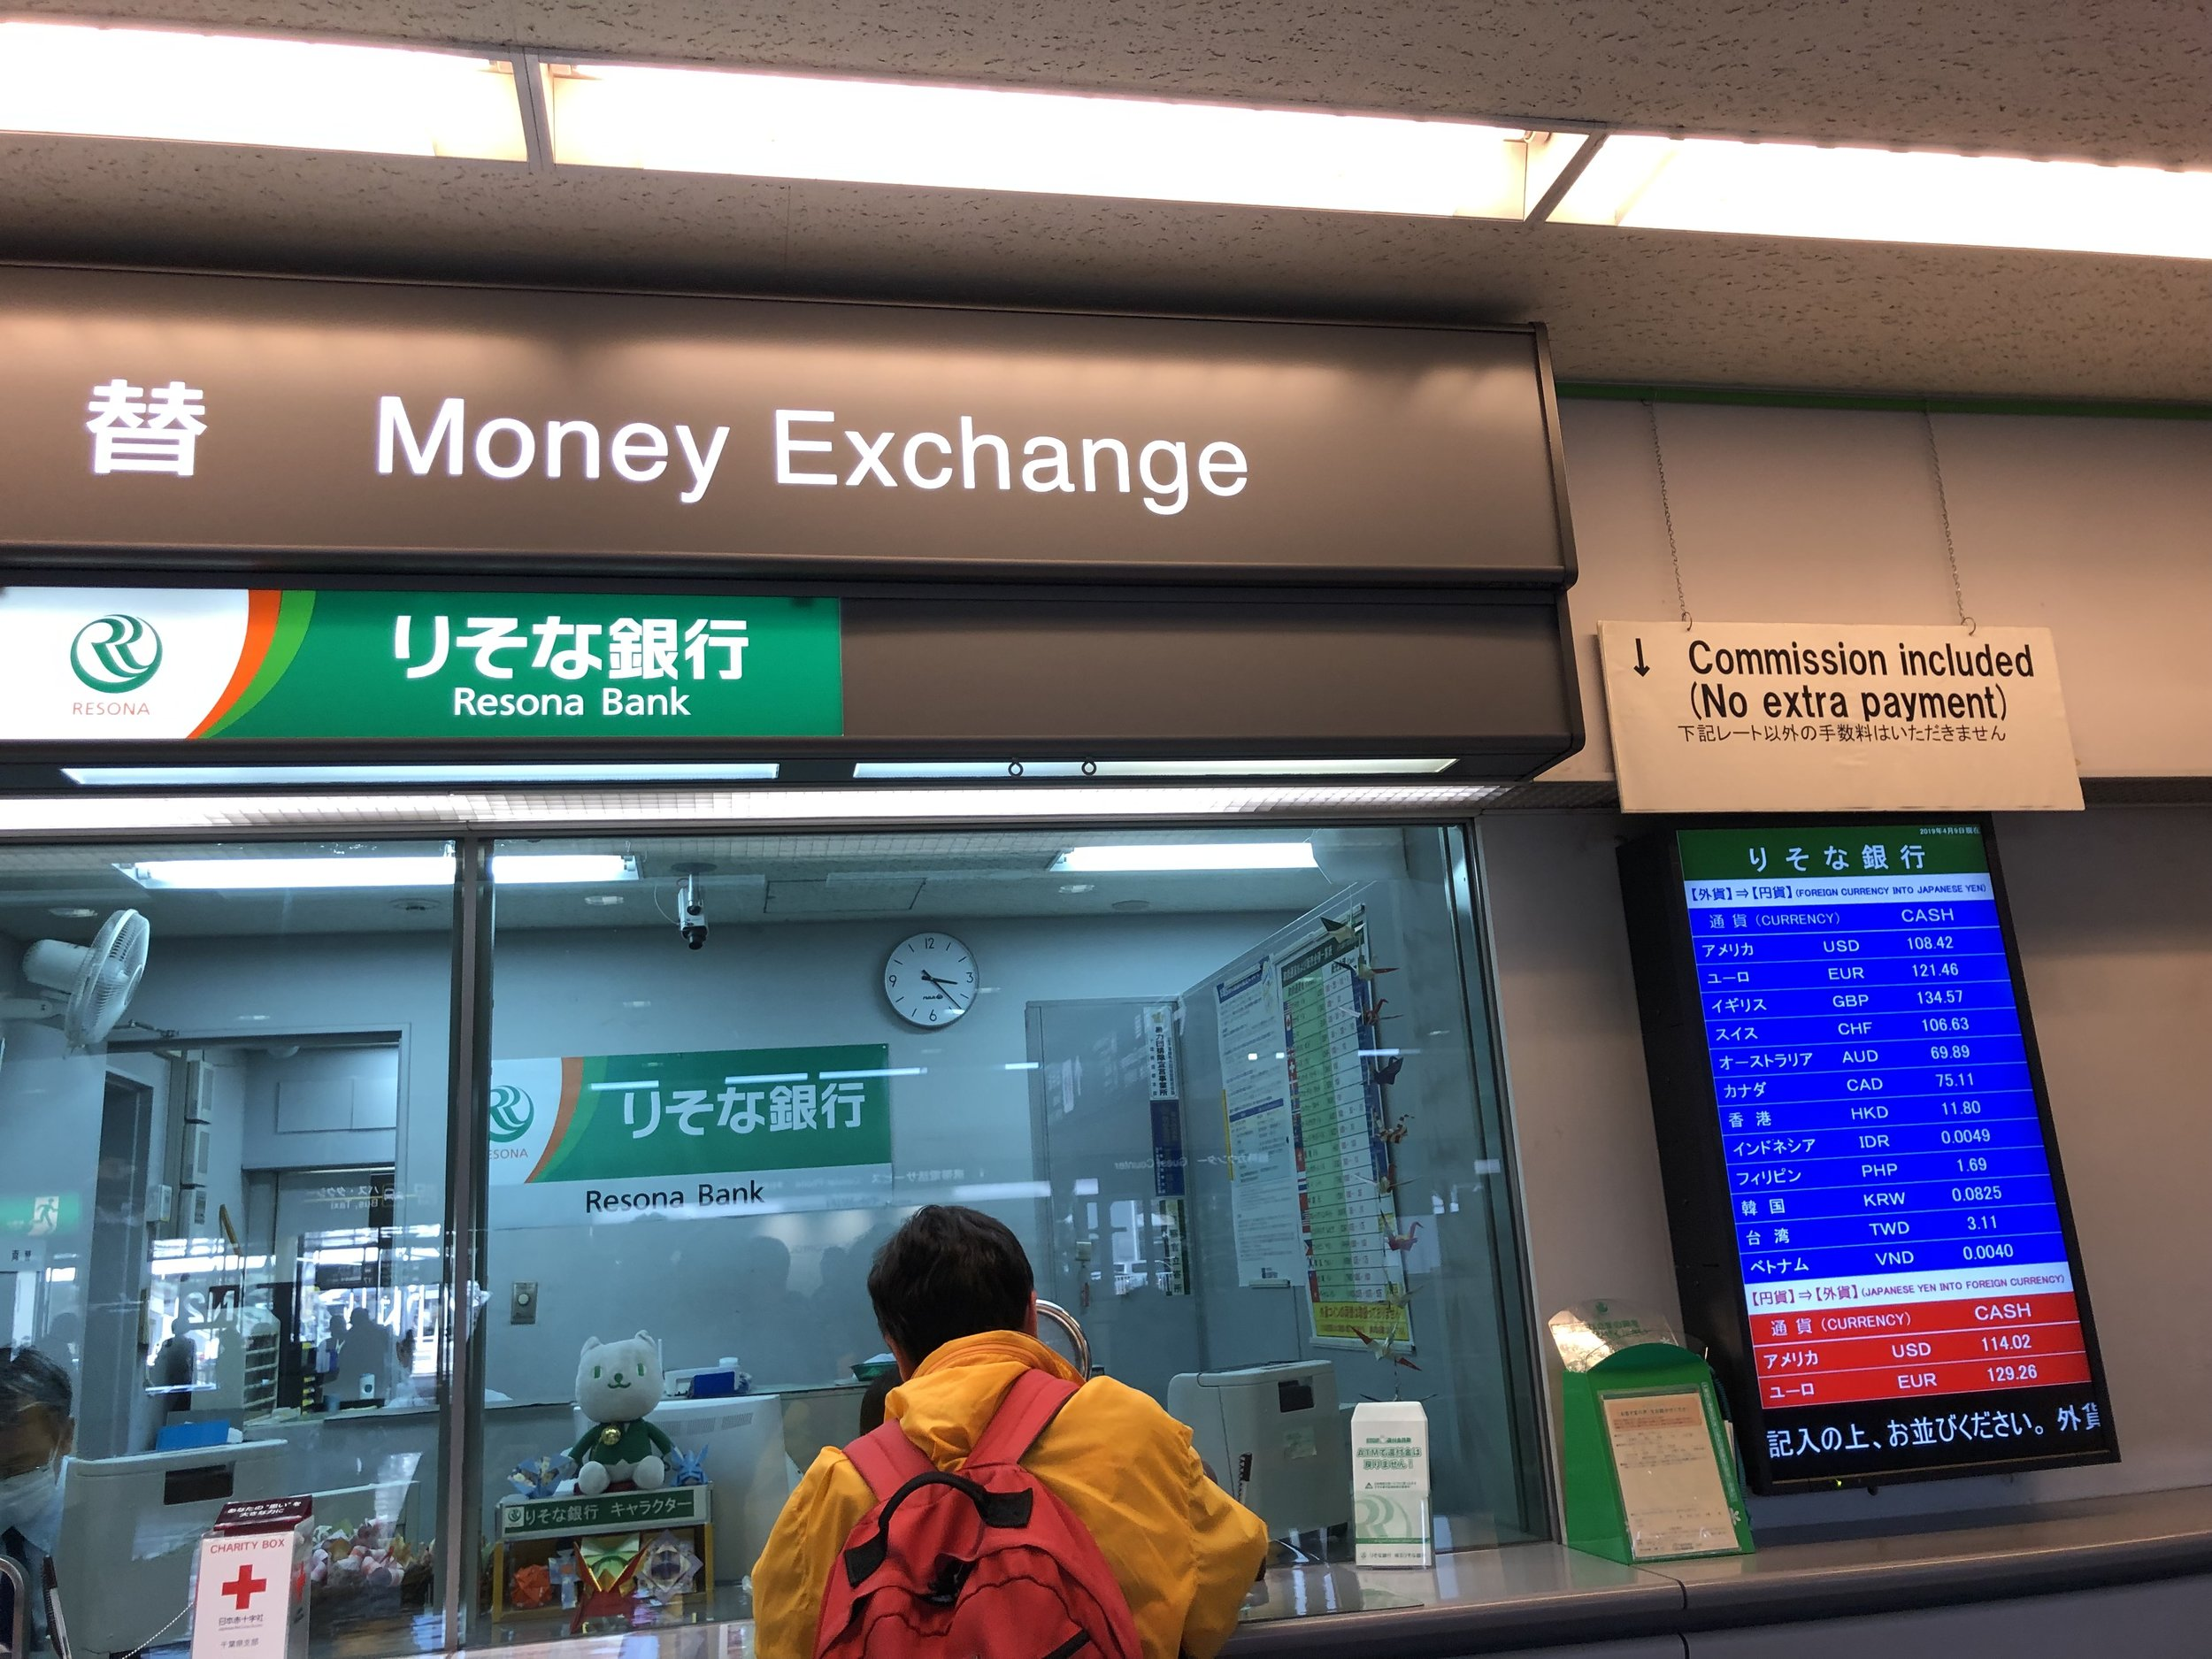 After all that waiting, it was time to wait in line some more to exchange USD for YEN. I've always found that the best exchange rates are in Narita Airport. No uncharges like in the US!